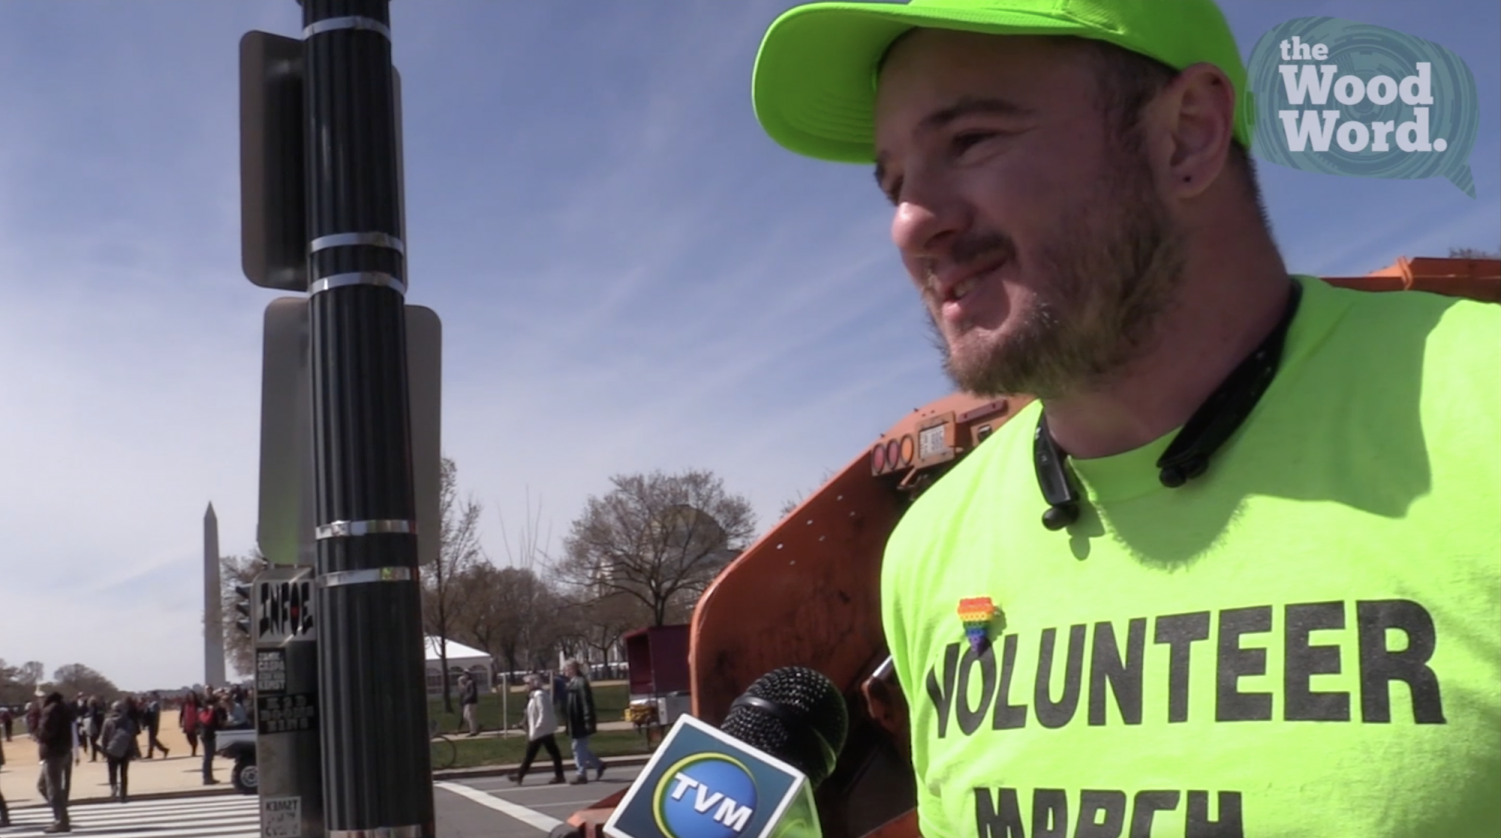 Faces of the March: The Volunteer